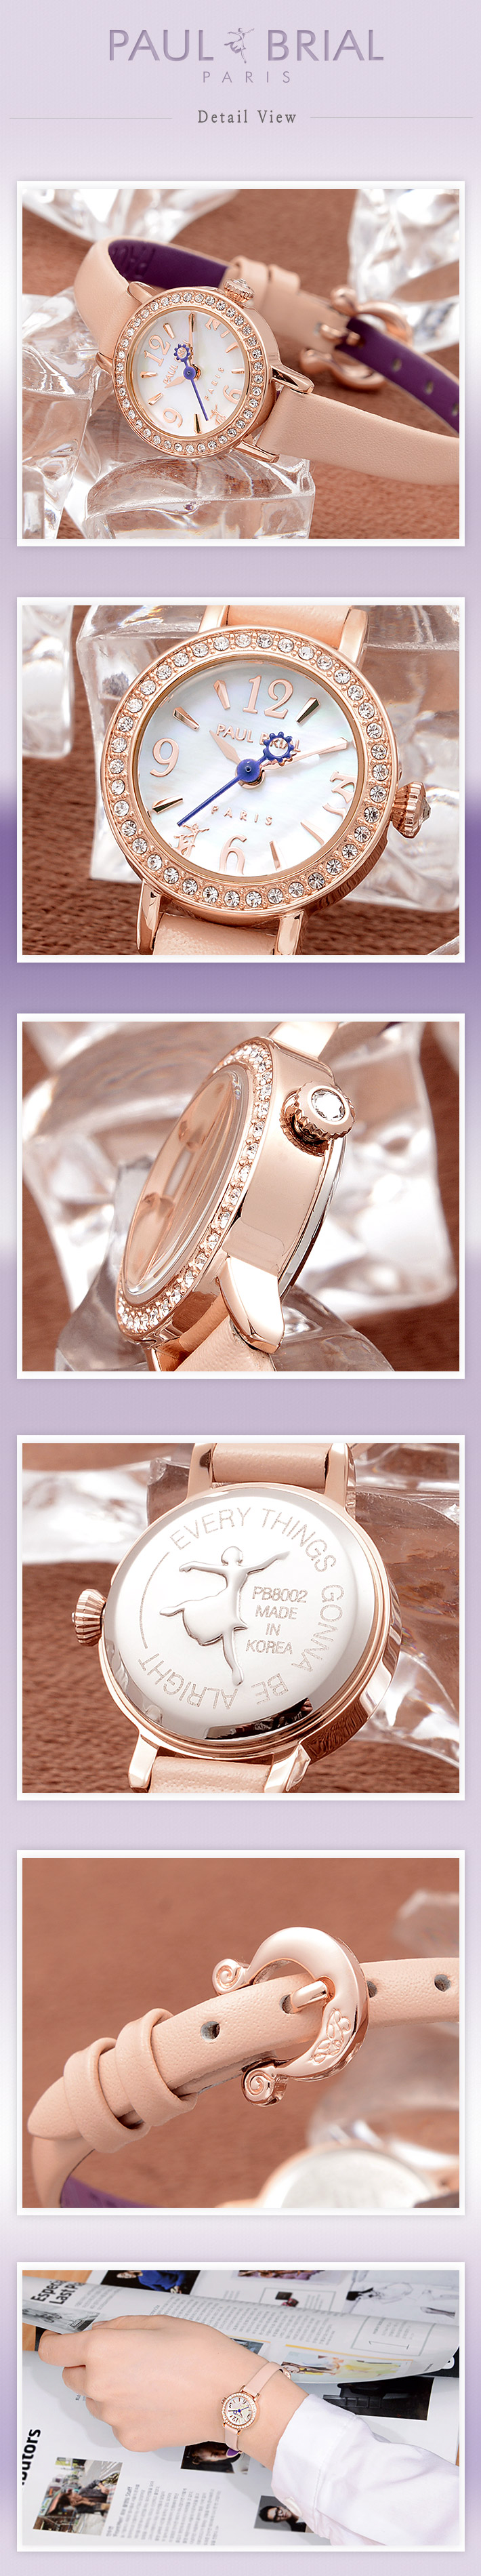 [ PAUL BRIAL ] KOREA MADE HIGH QUALITY LADIES ROSE GOLD PINK LEATHER BAND WATCH PB8002RGPK_A MARSEILLE